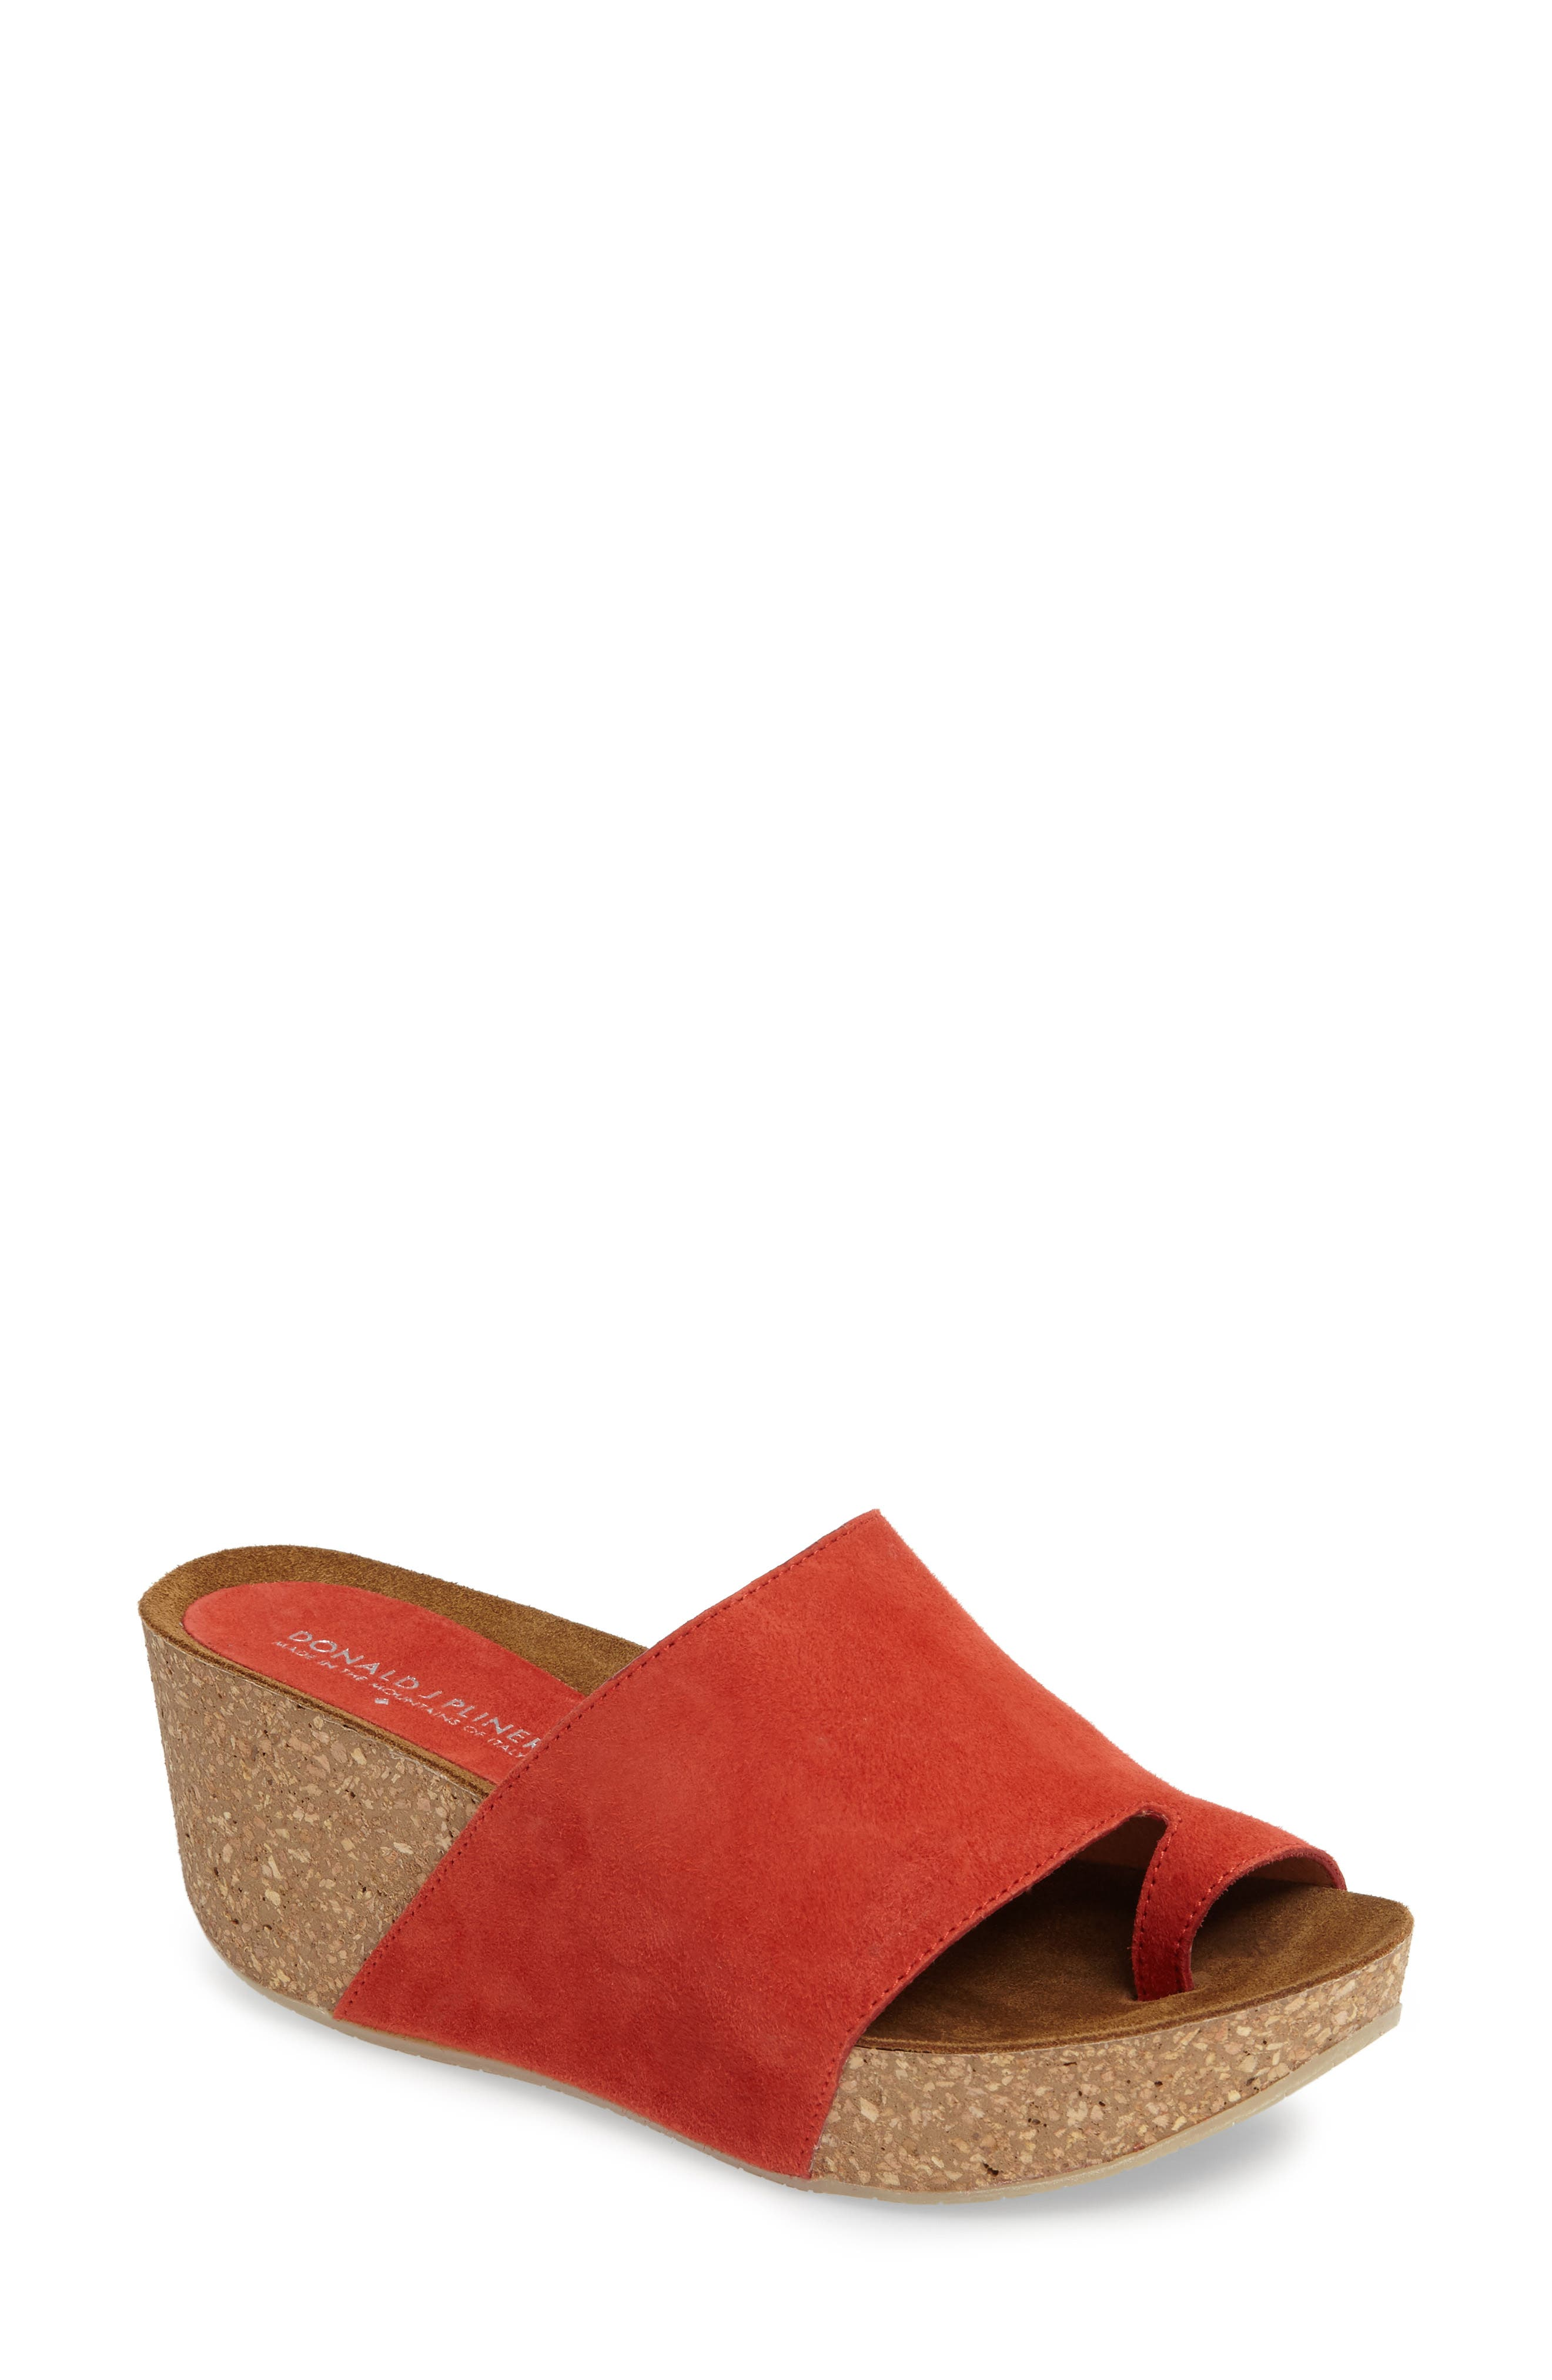 Donald J Pliner Ginie Platform Wedge Sandal,                             Main thumbnail 7, color,